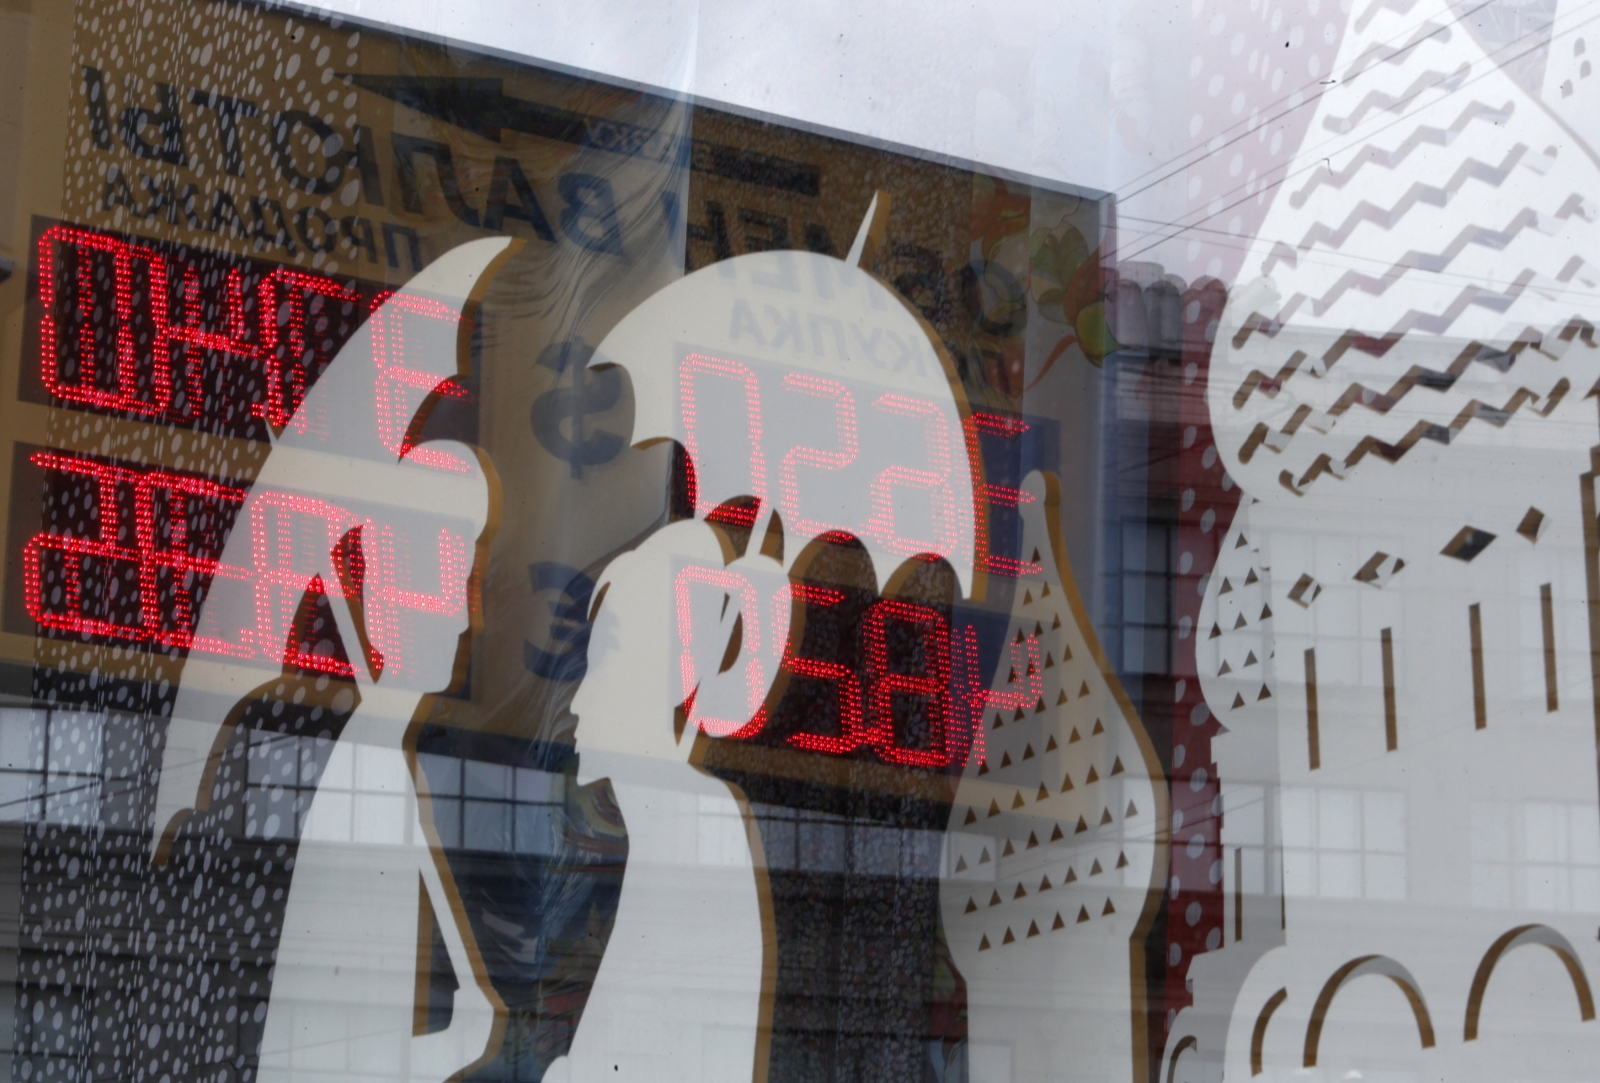 A board displaying currency exchange rates is reflected in a shop window in central Moscow